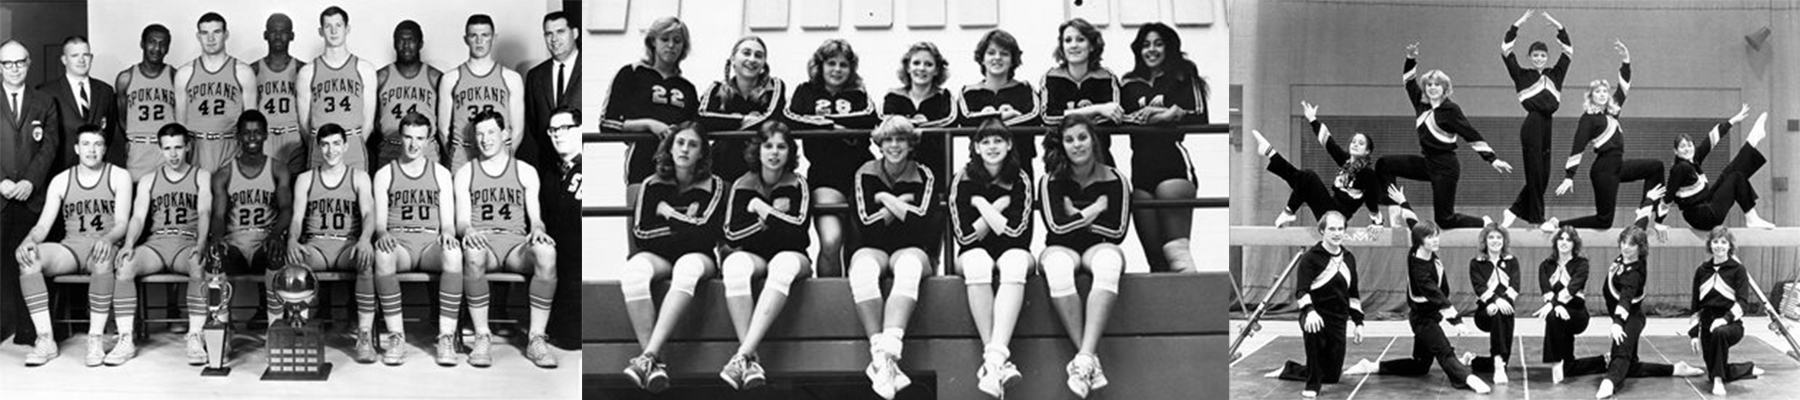 Black and white hall of fame team photos